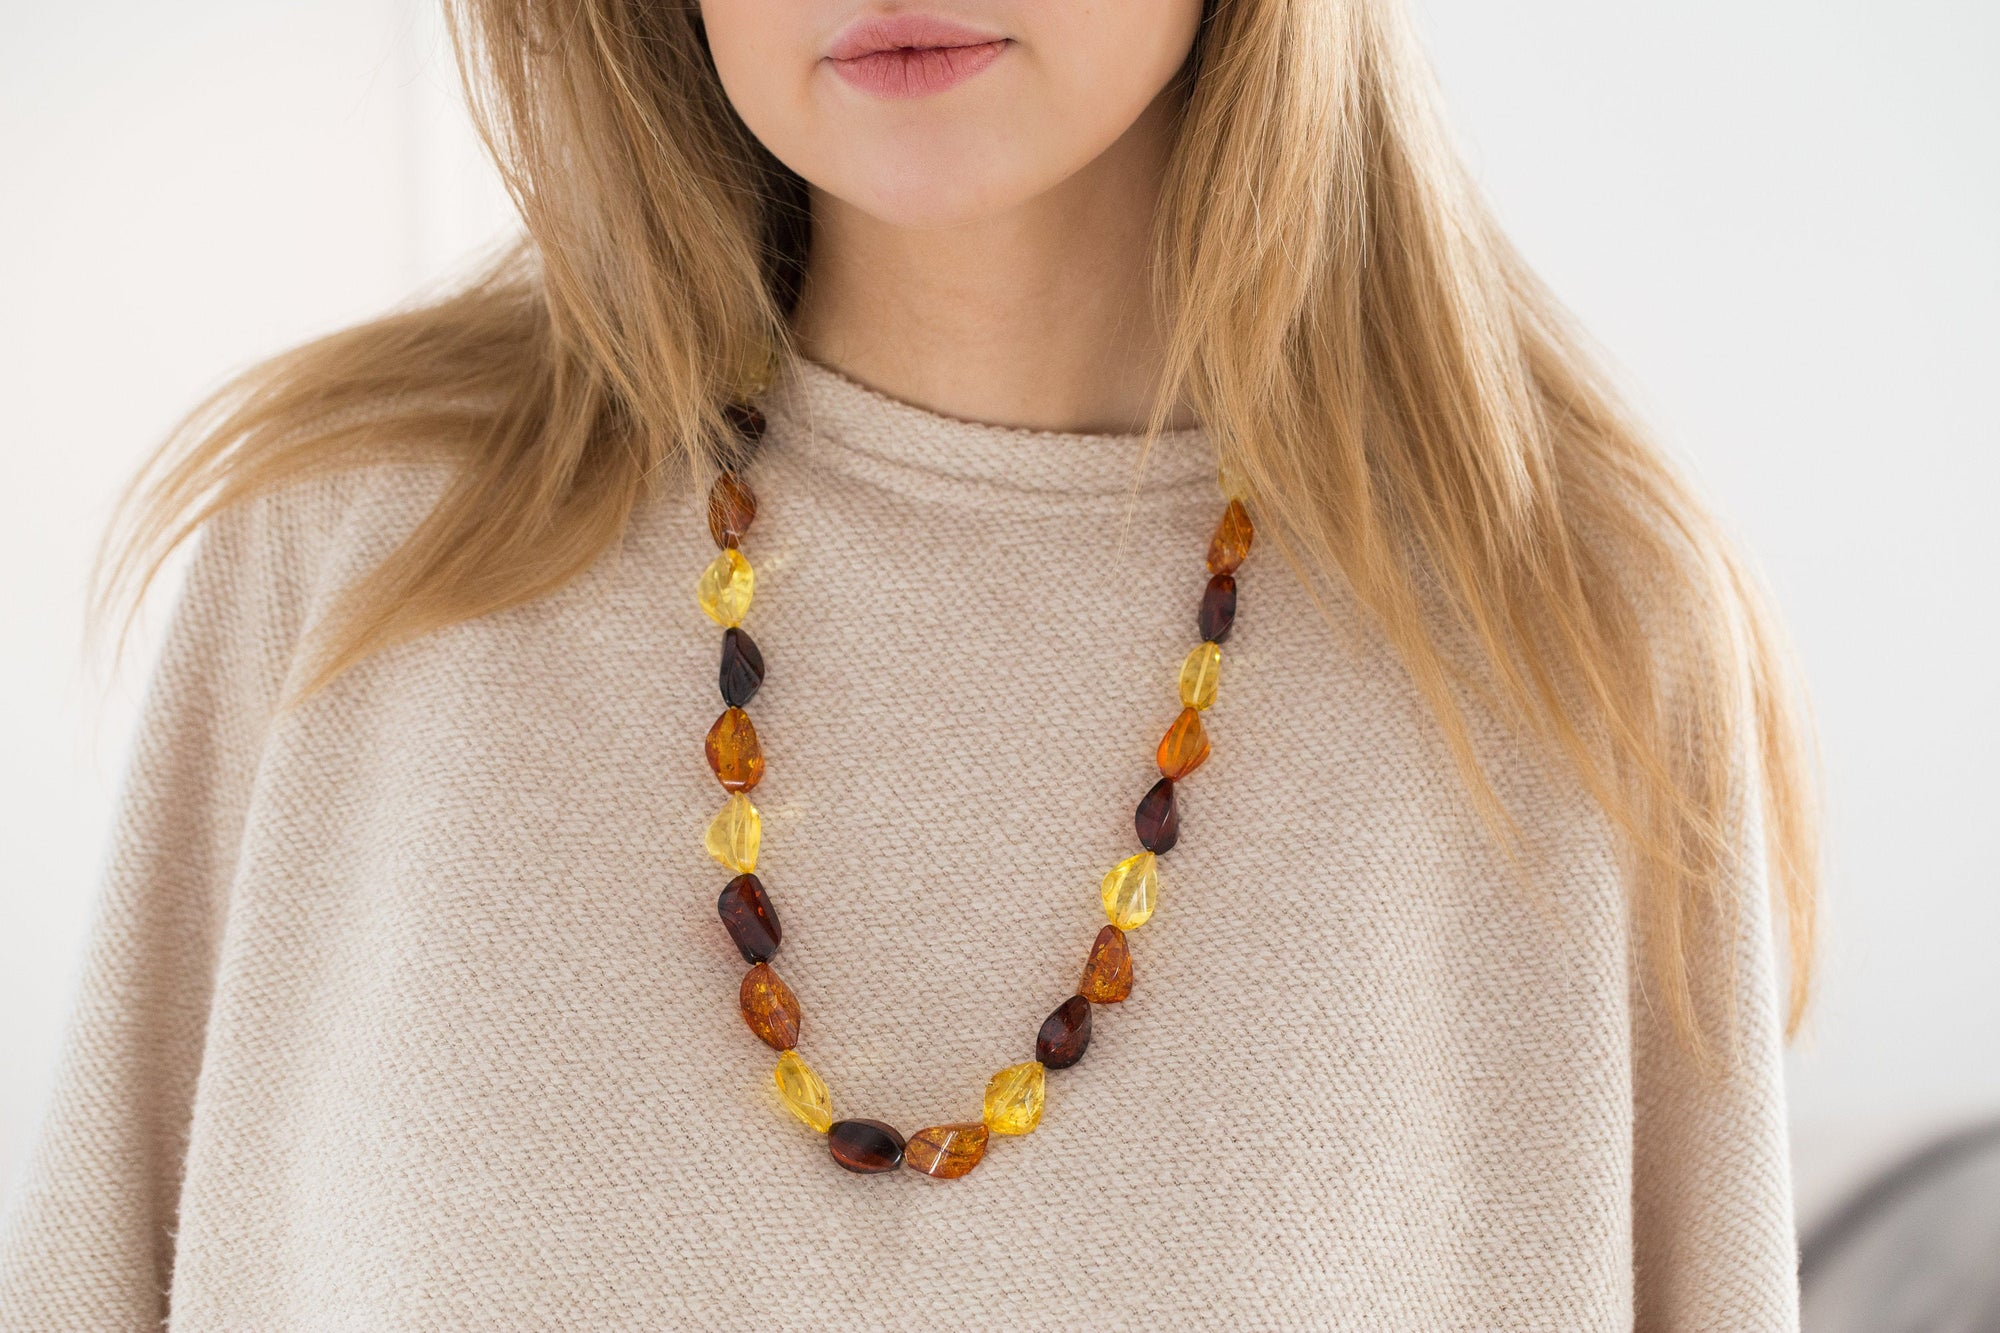 70cm Multicolour Amber Necklace, Luxury Baltic Amber Bead Necklace